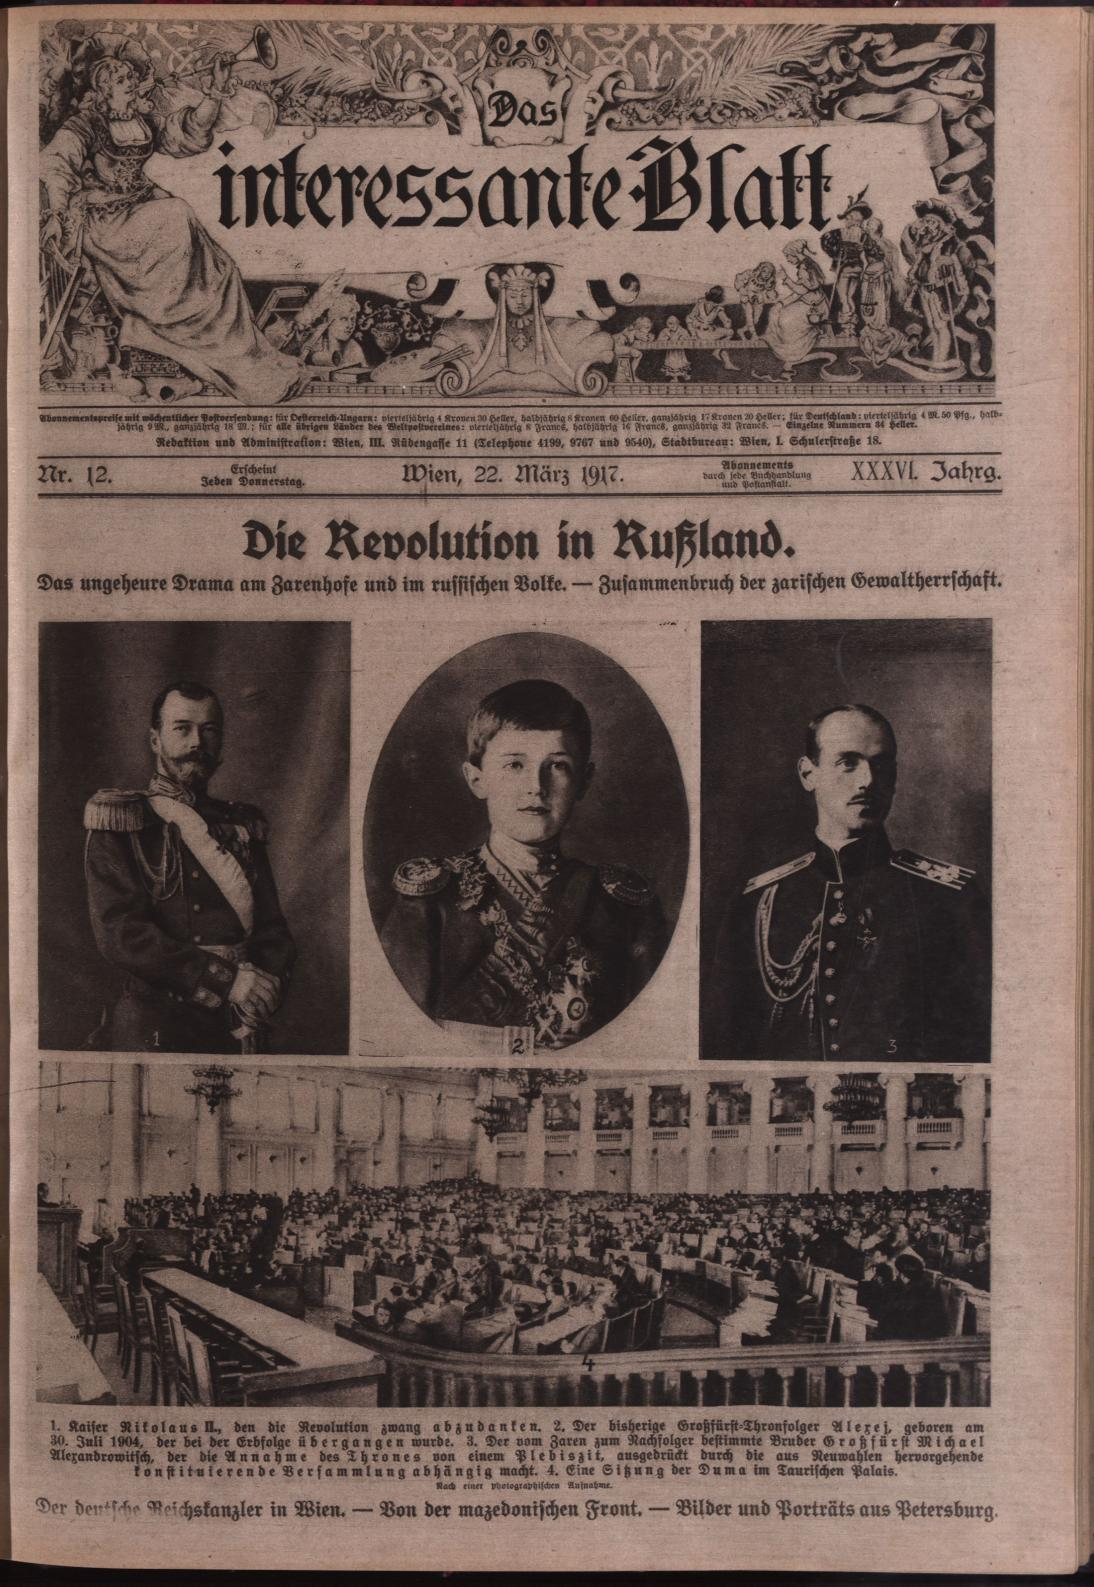 Das Interessante Blatt: covering the February revolution in Russia, that led to the abdication Tsar Nicholas II. (Collection National Library Austria)